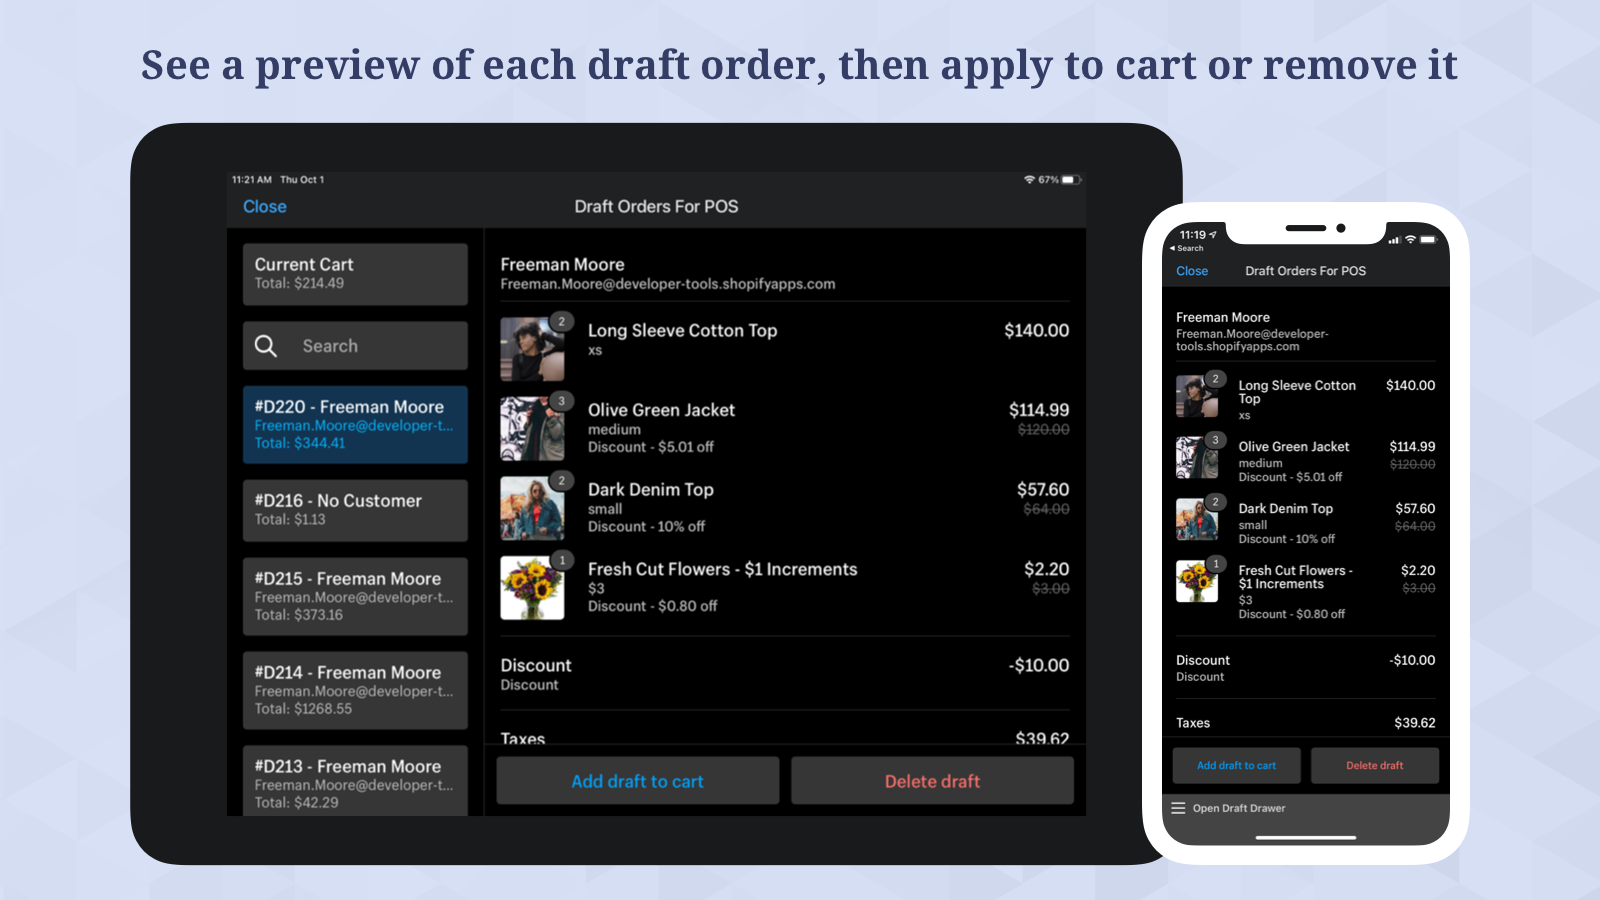 See a preview of each draft, then apply to cart or remove it